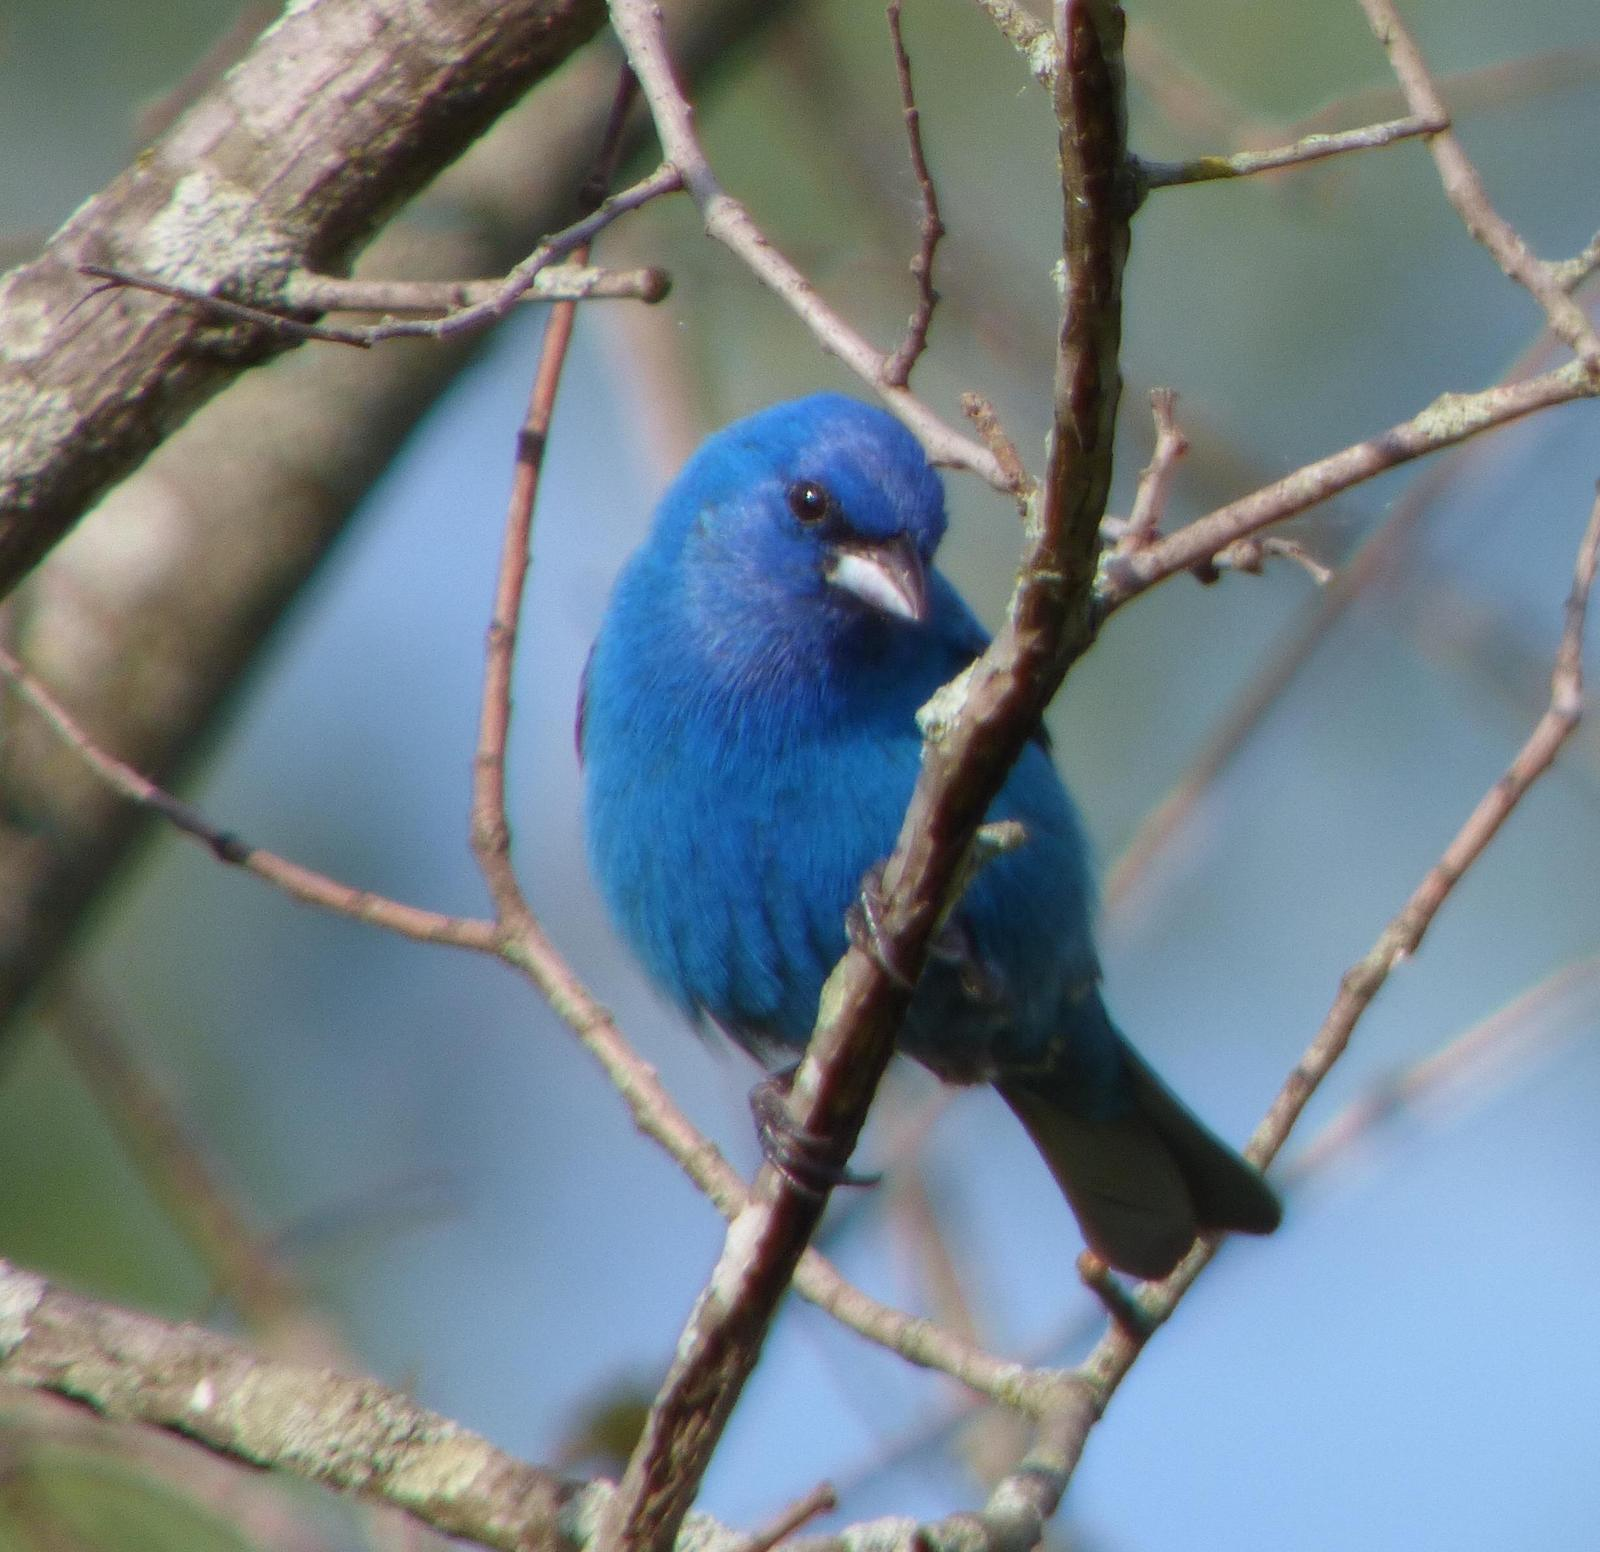 Indigo Bunting Photo by Phil Ryan